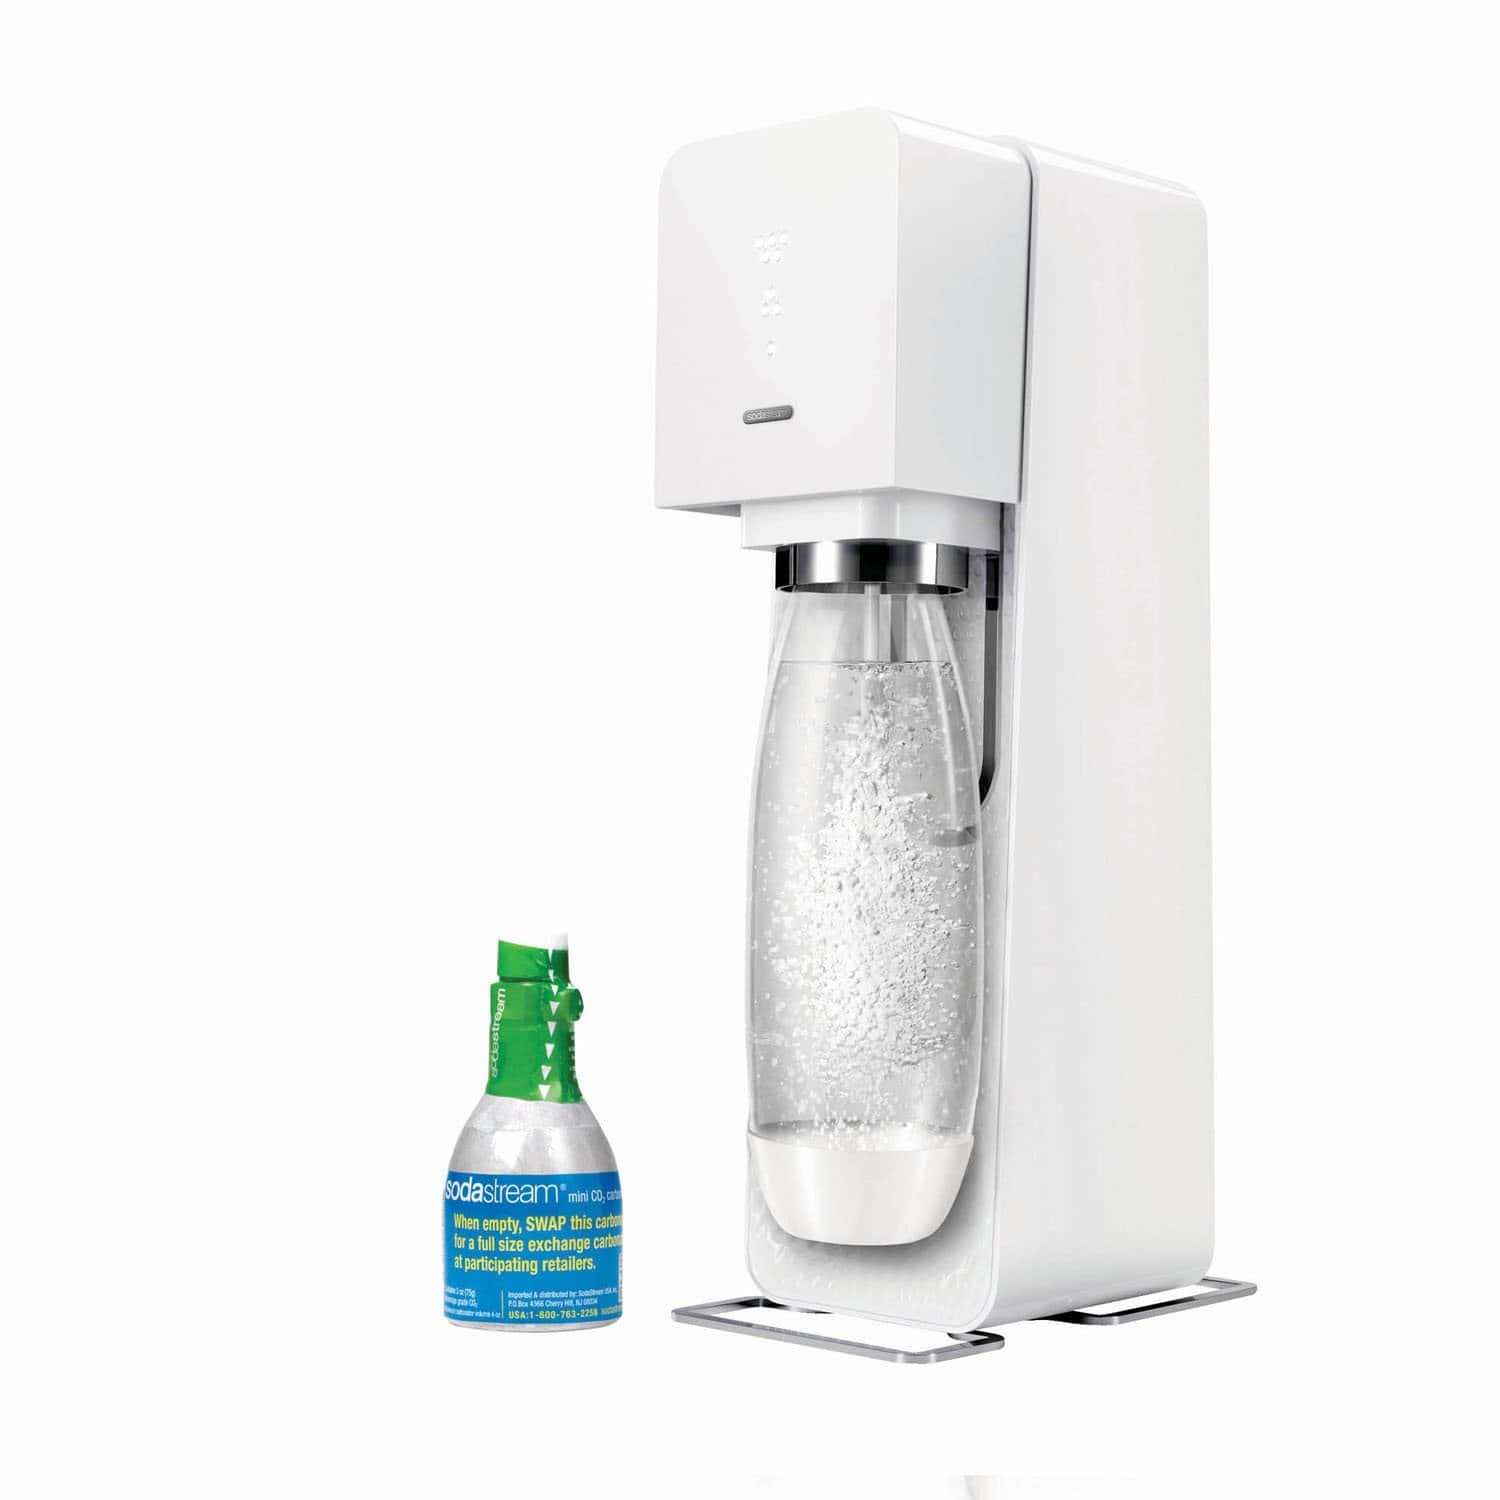 sodastream source sparkling water maker starter kit white. Black Bedroom Furniture Sets. Home Design Ideas